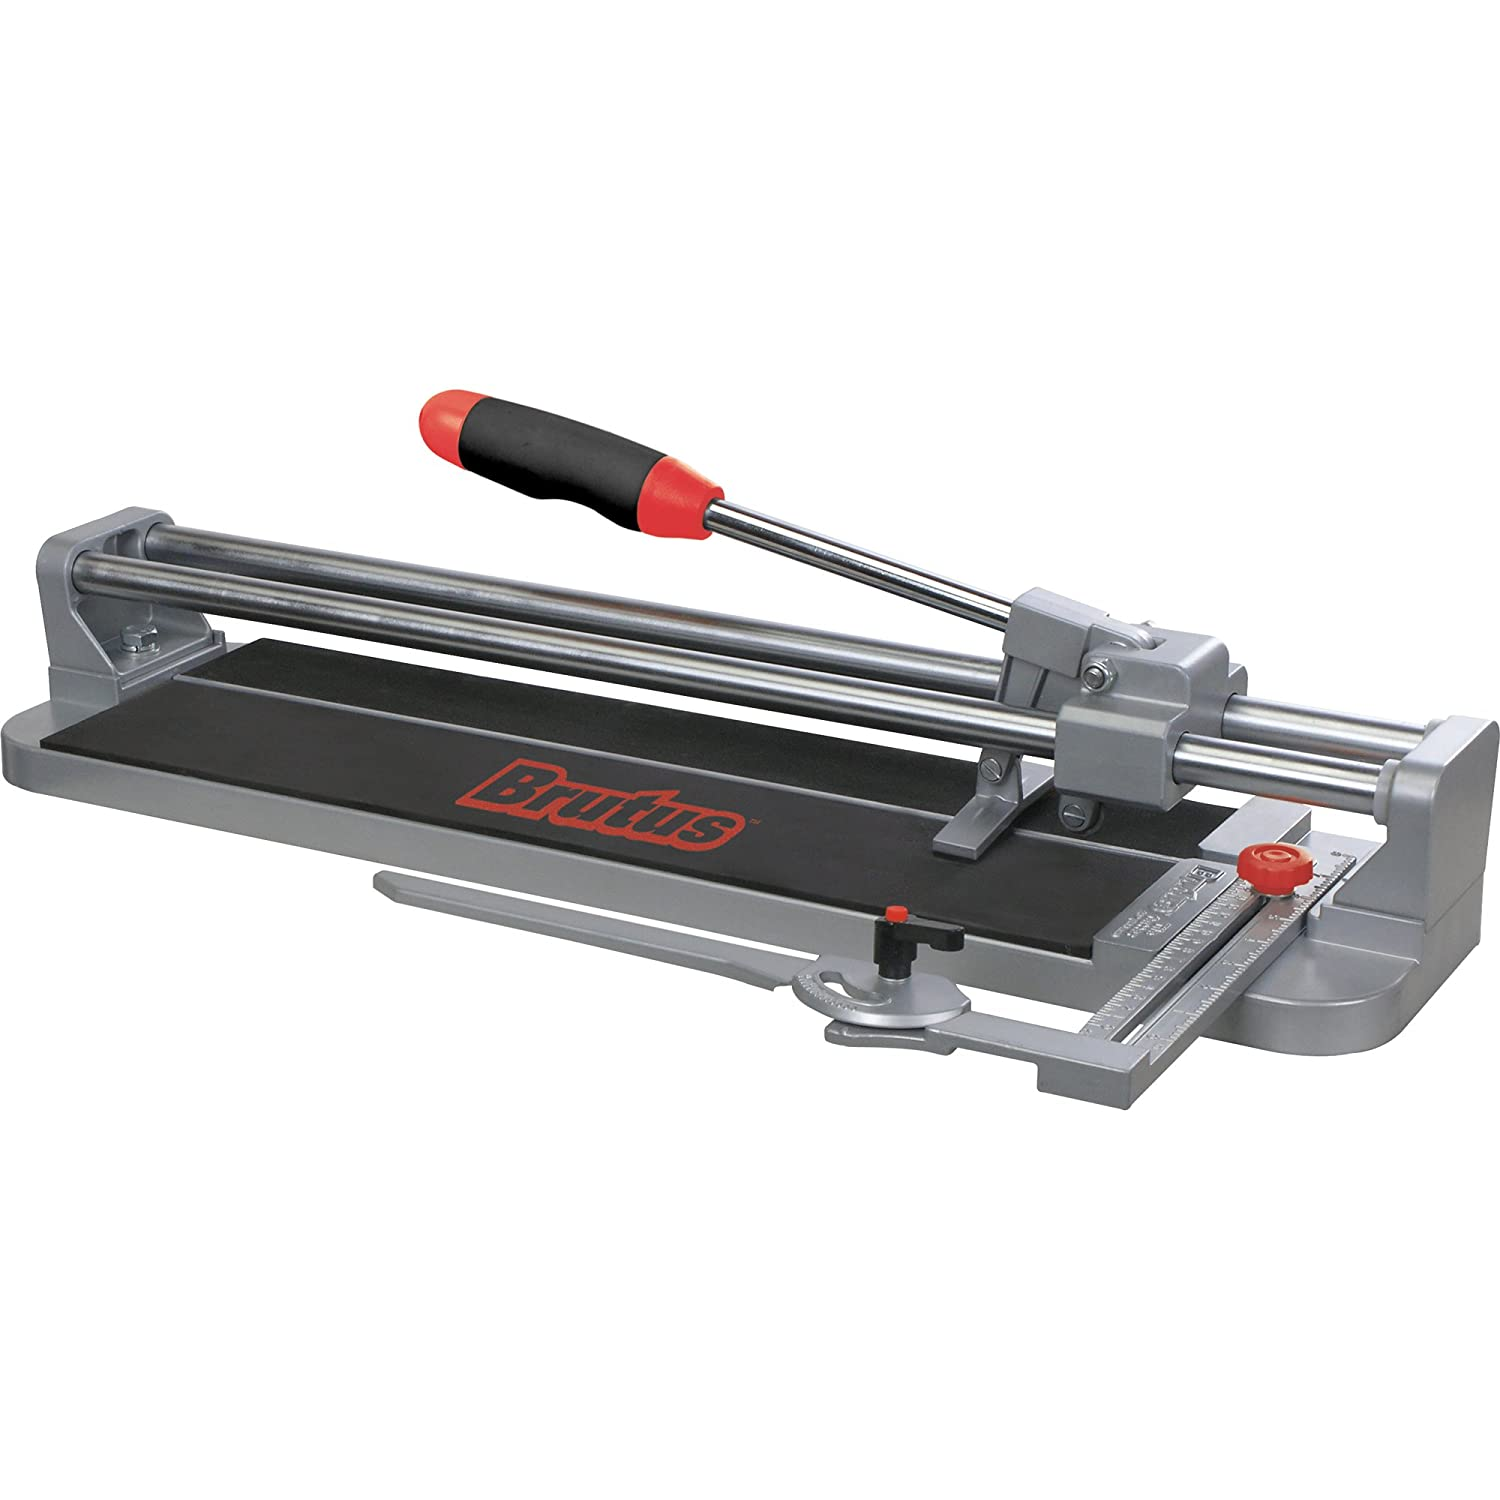 Brutus 10552br 20 inch rip porcelain and ceramic tile cutter brutus 10552br 20 inch rip porcelain and ceramic tile cutter amazon dailygadgetfo Choice Image